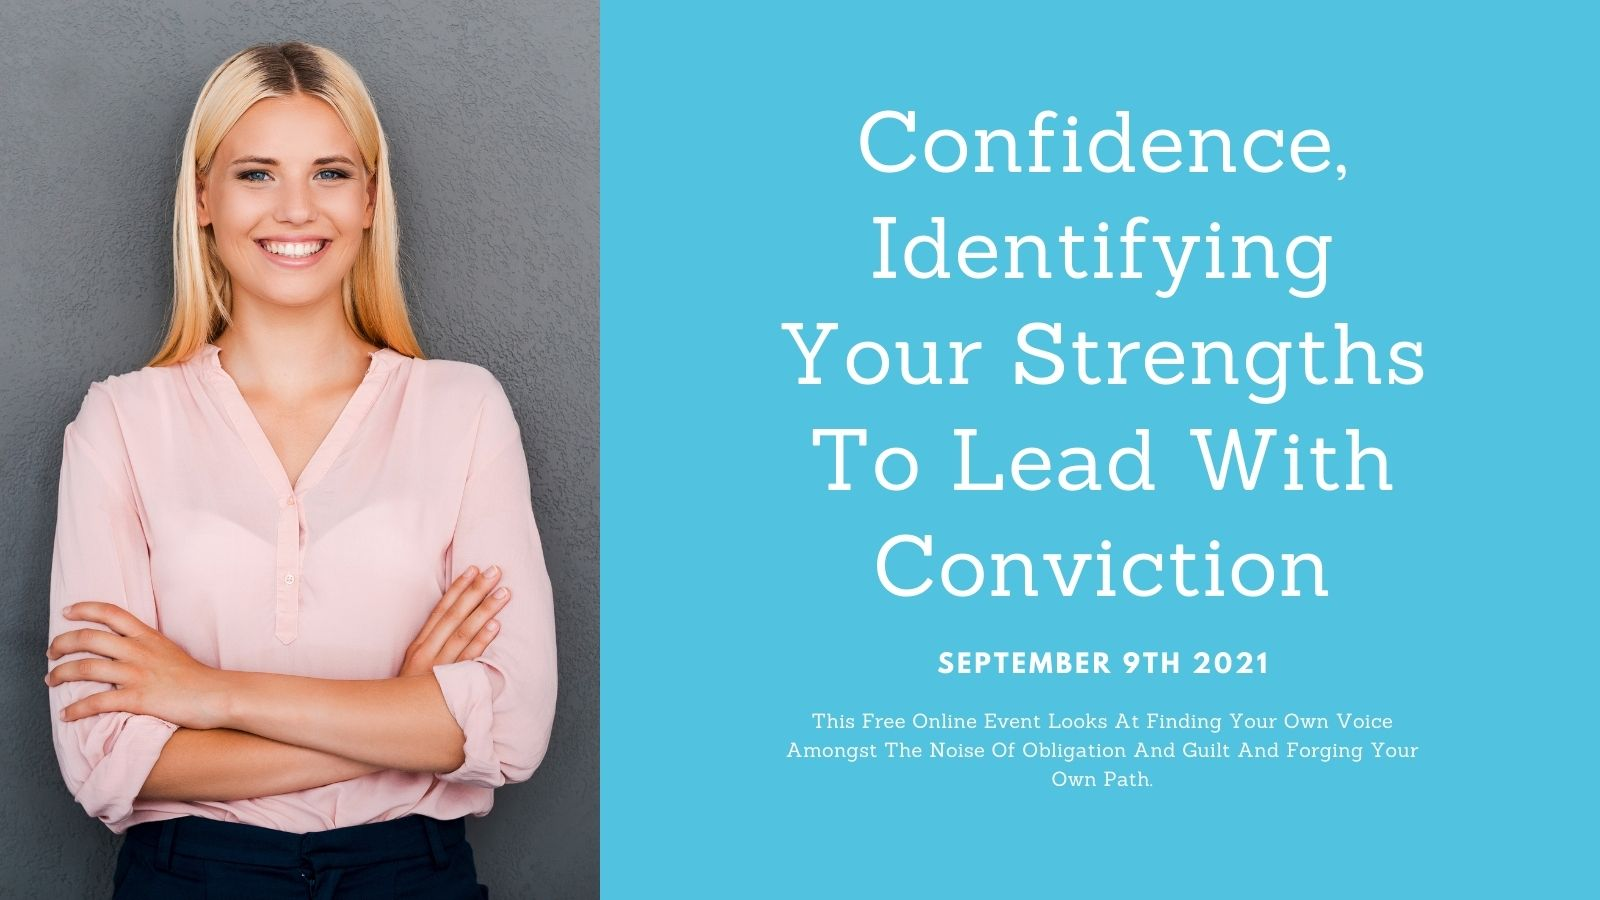 Confidence, Identifying Your Strengths To Lead With Conviction